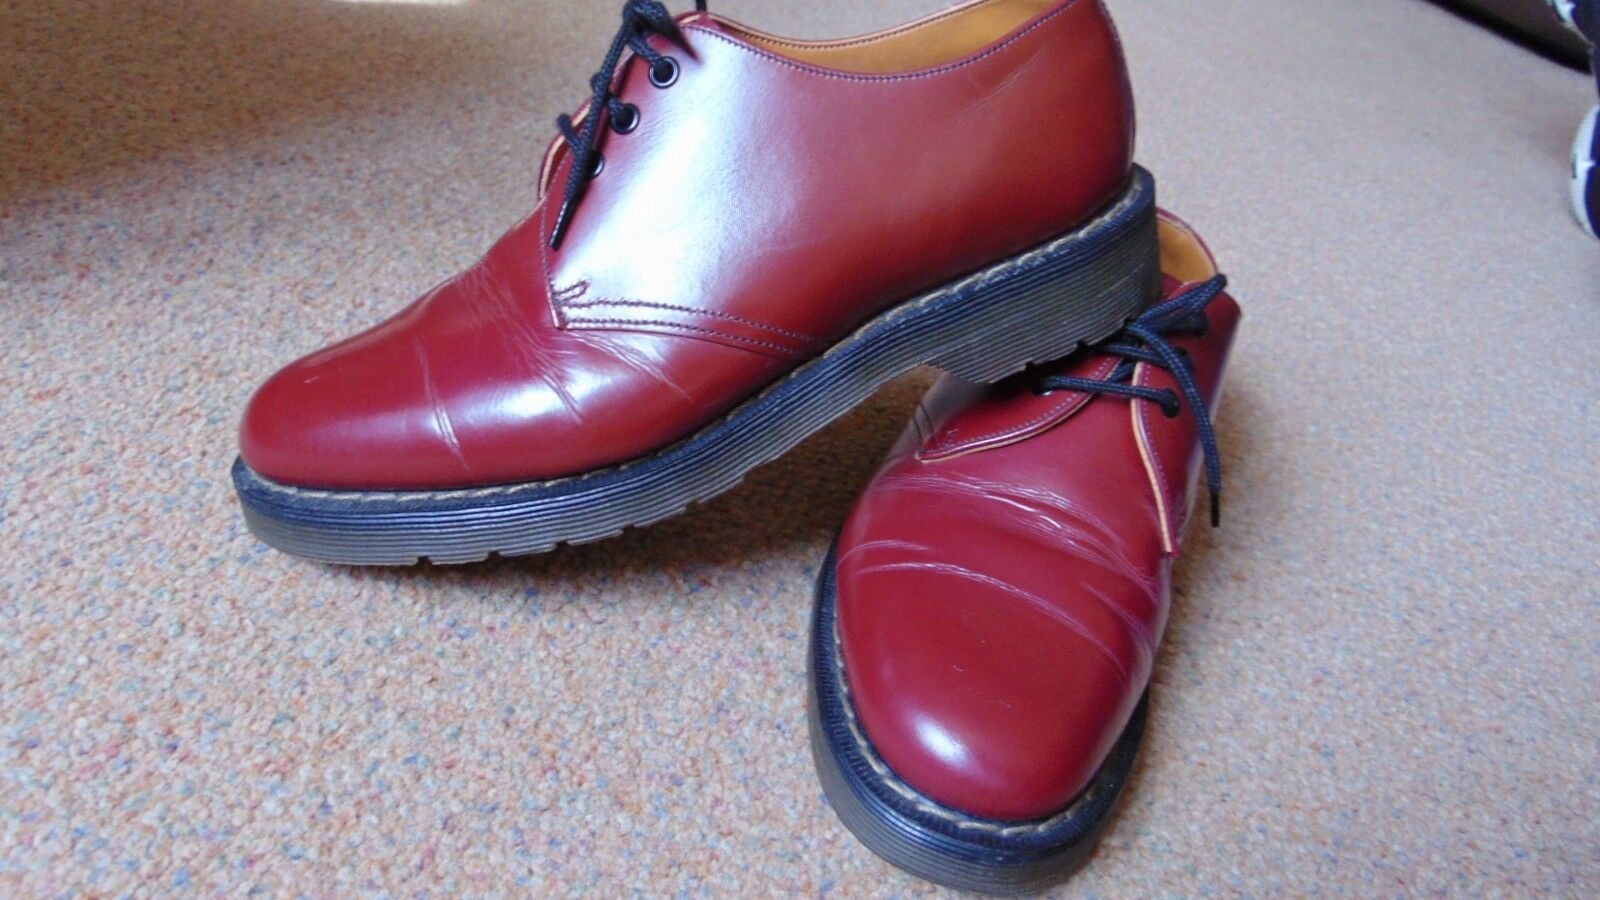 Rare Vintage Hawkins No 1, 3 Eye Leather Air Cushioned shoes Mod Skins 6 Oxblood